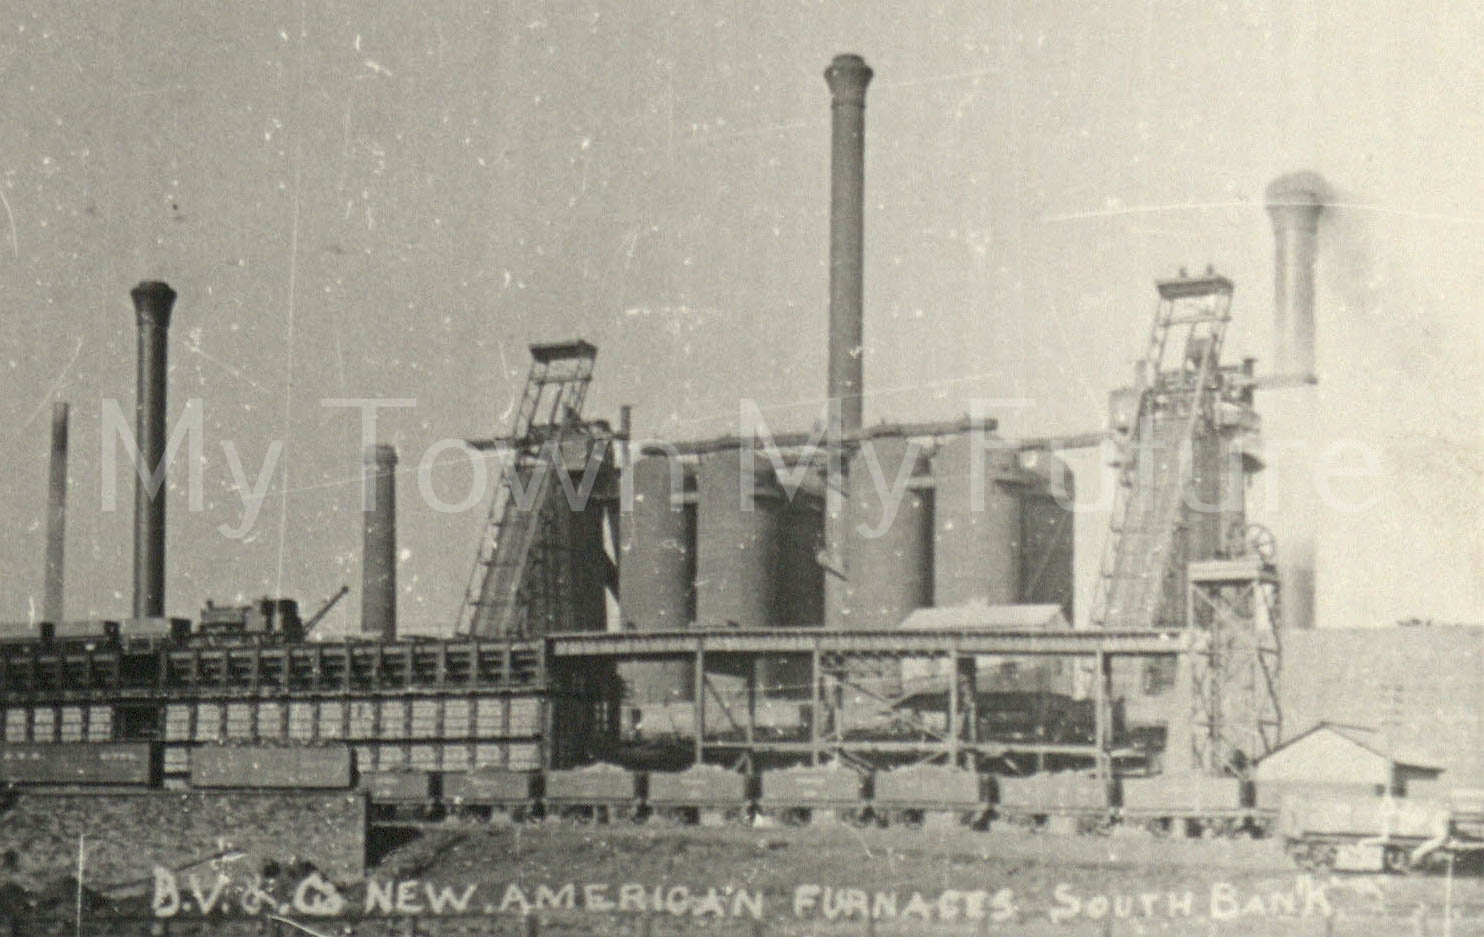 Bolckow & Vaughan Co. New American Furnaces South Bank